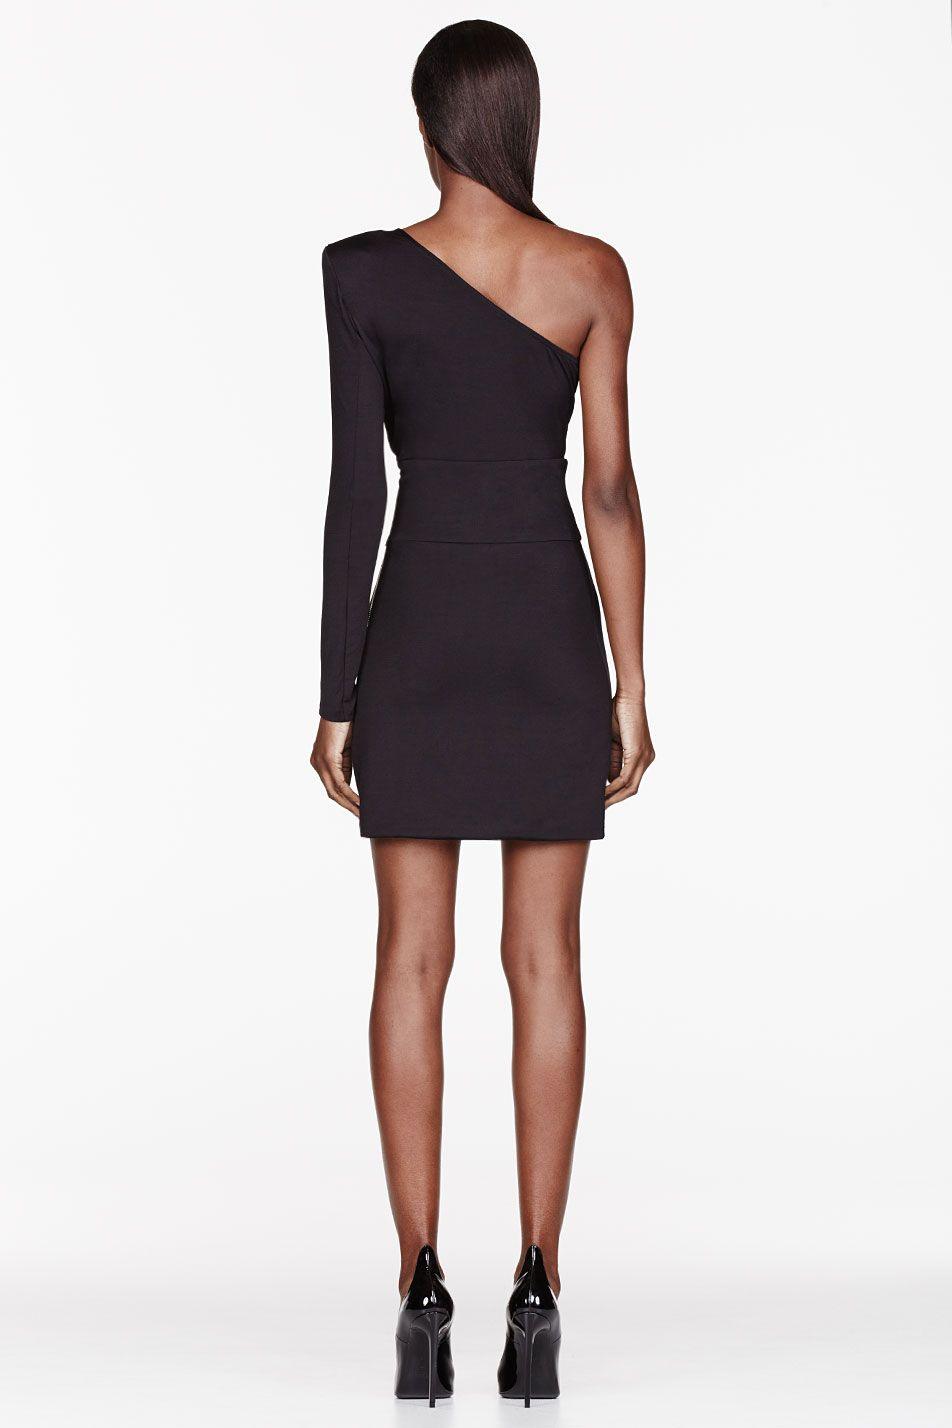 BALMAIN Black One Sleeve Dress